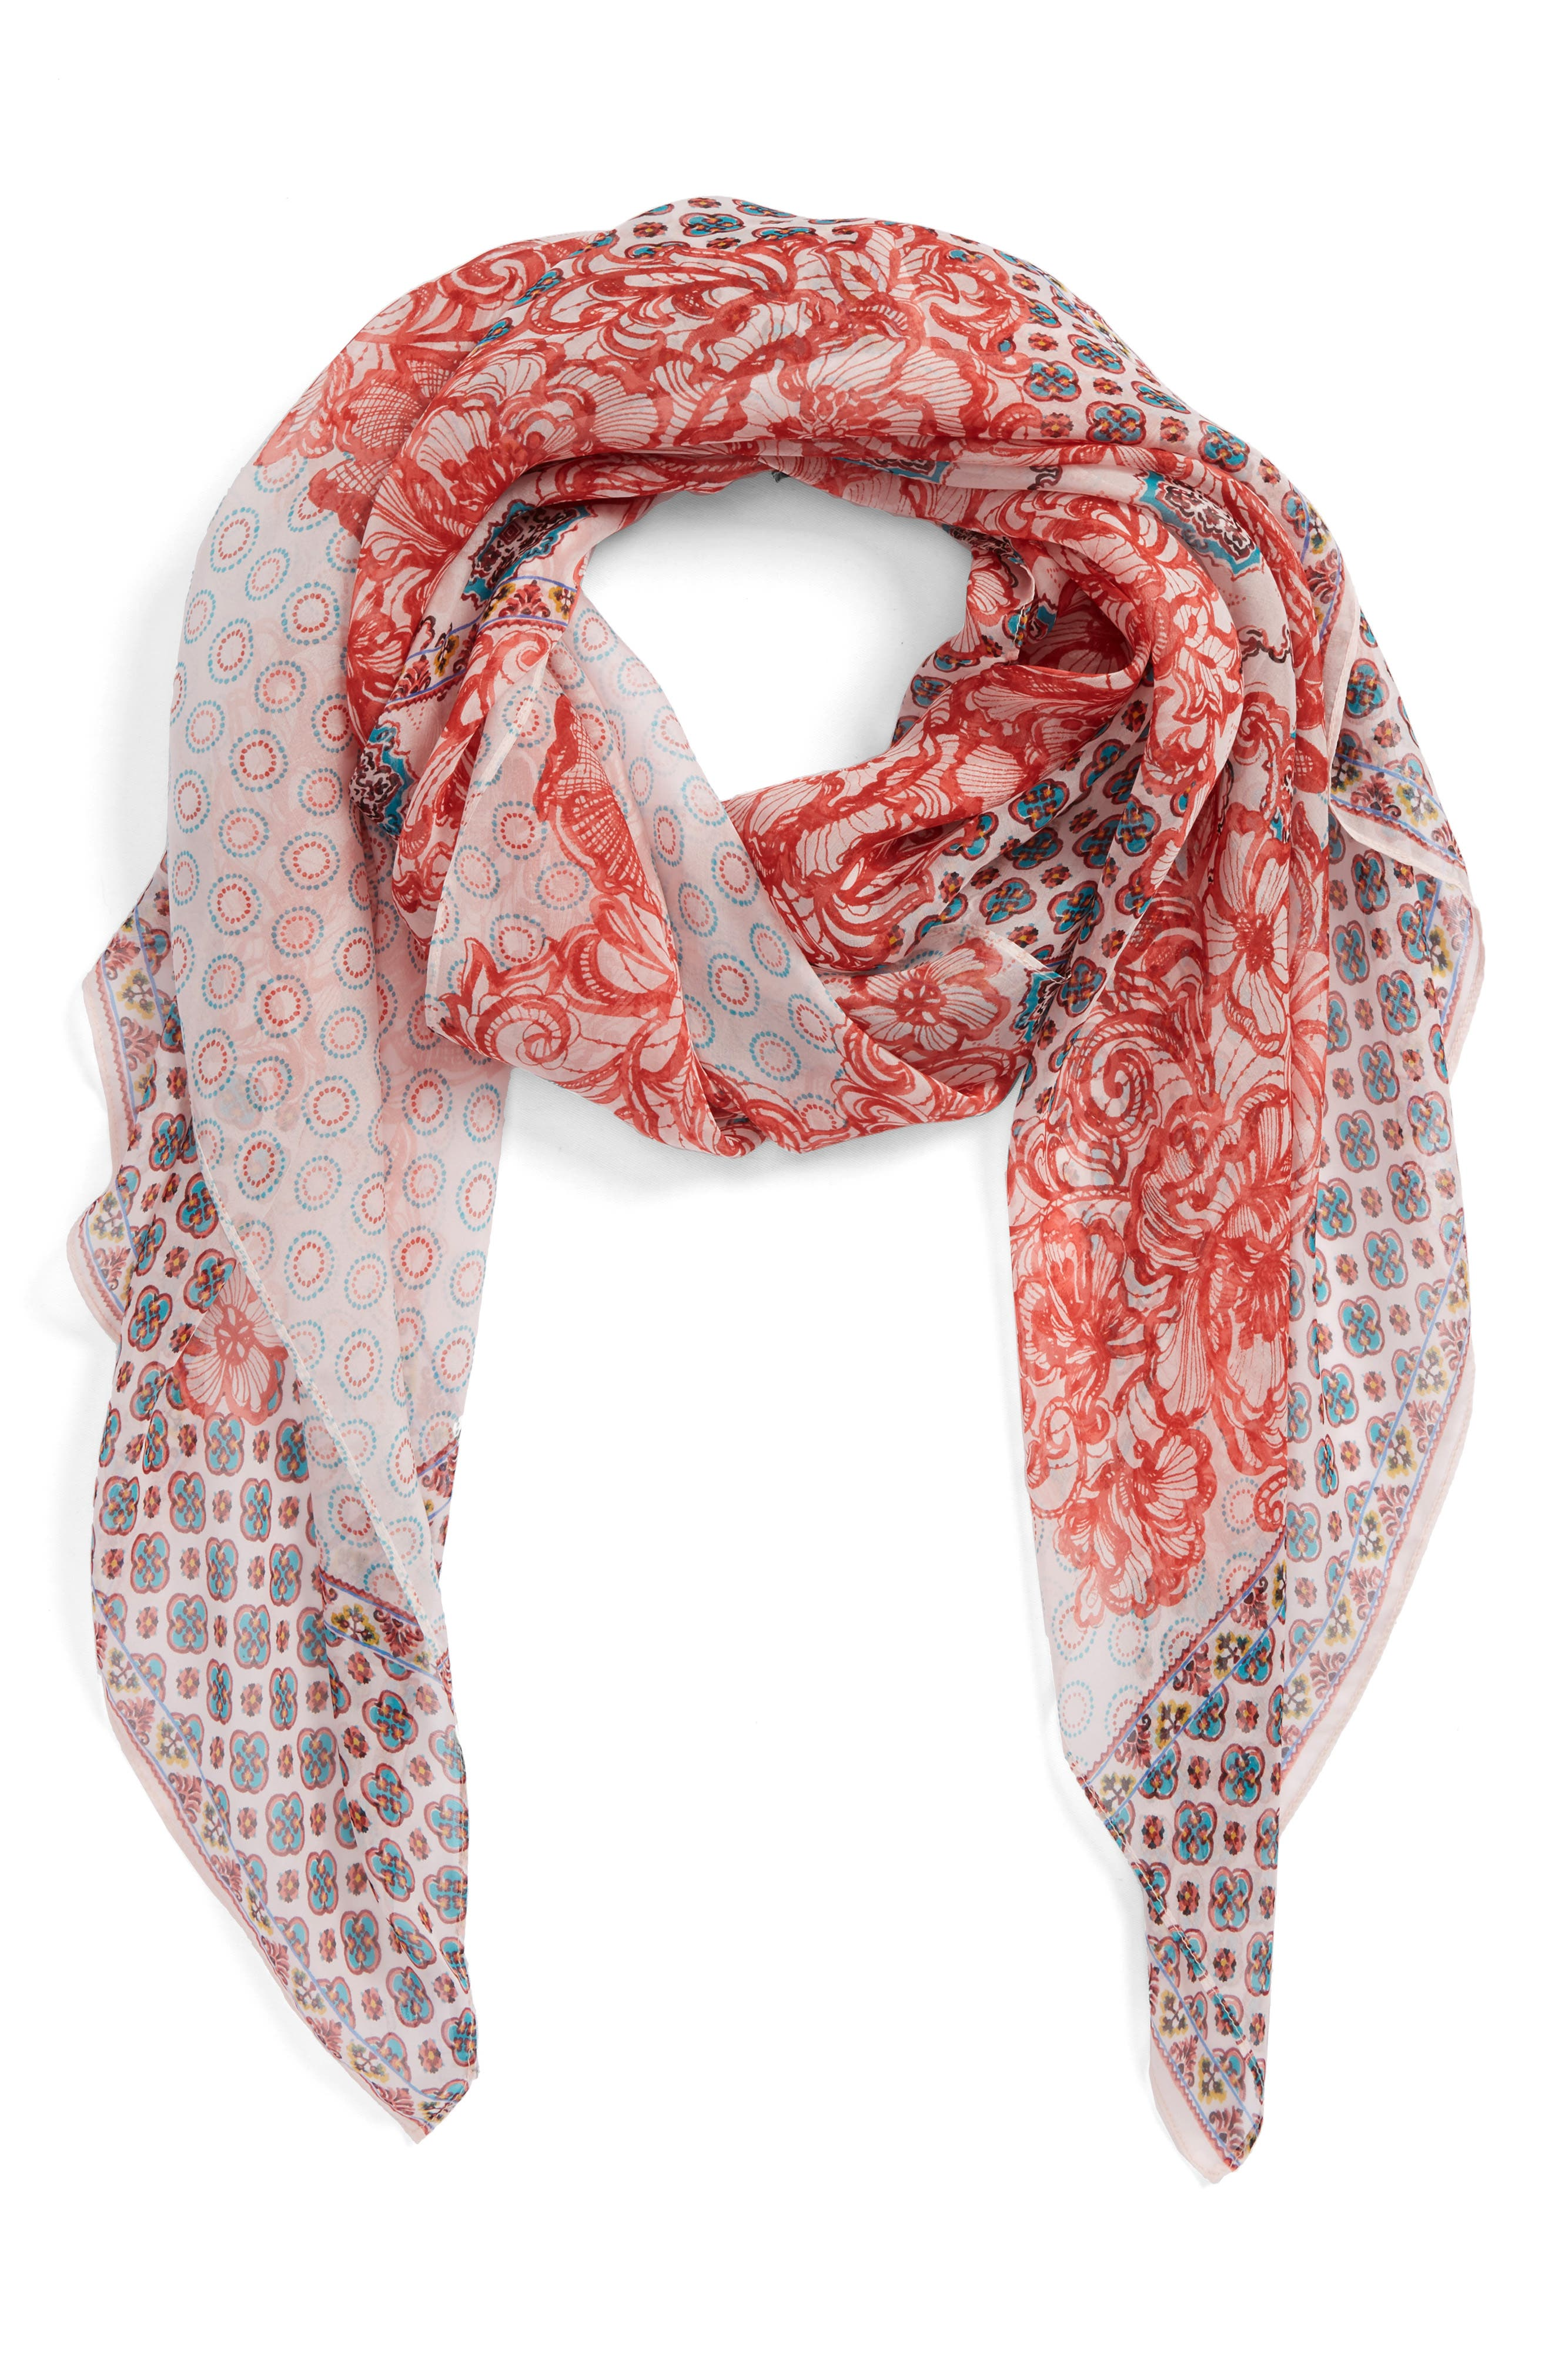 Silk Chiffon Oblong Scarf,                         Main,                         color, Red Ottoman Lace